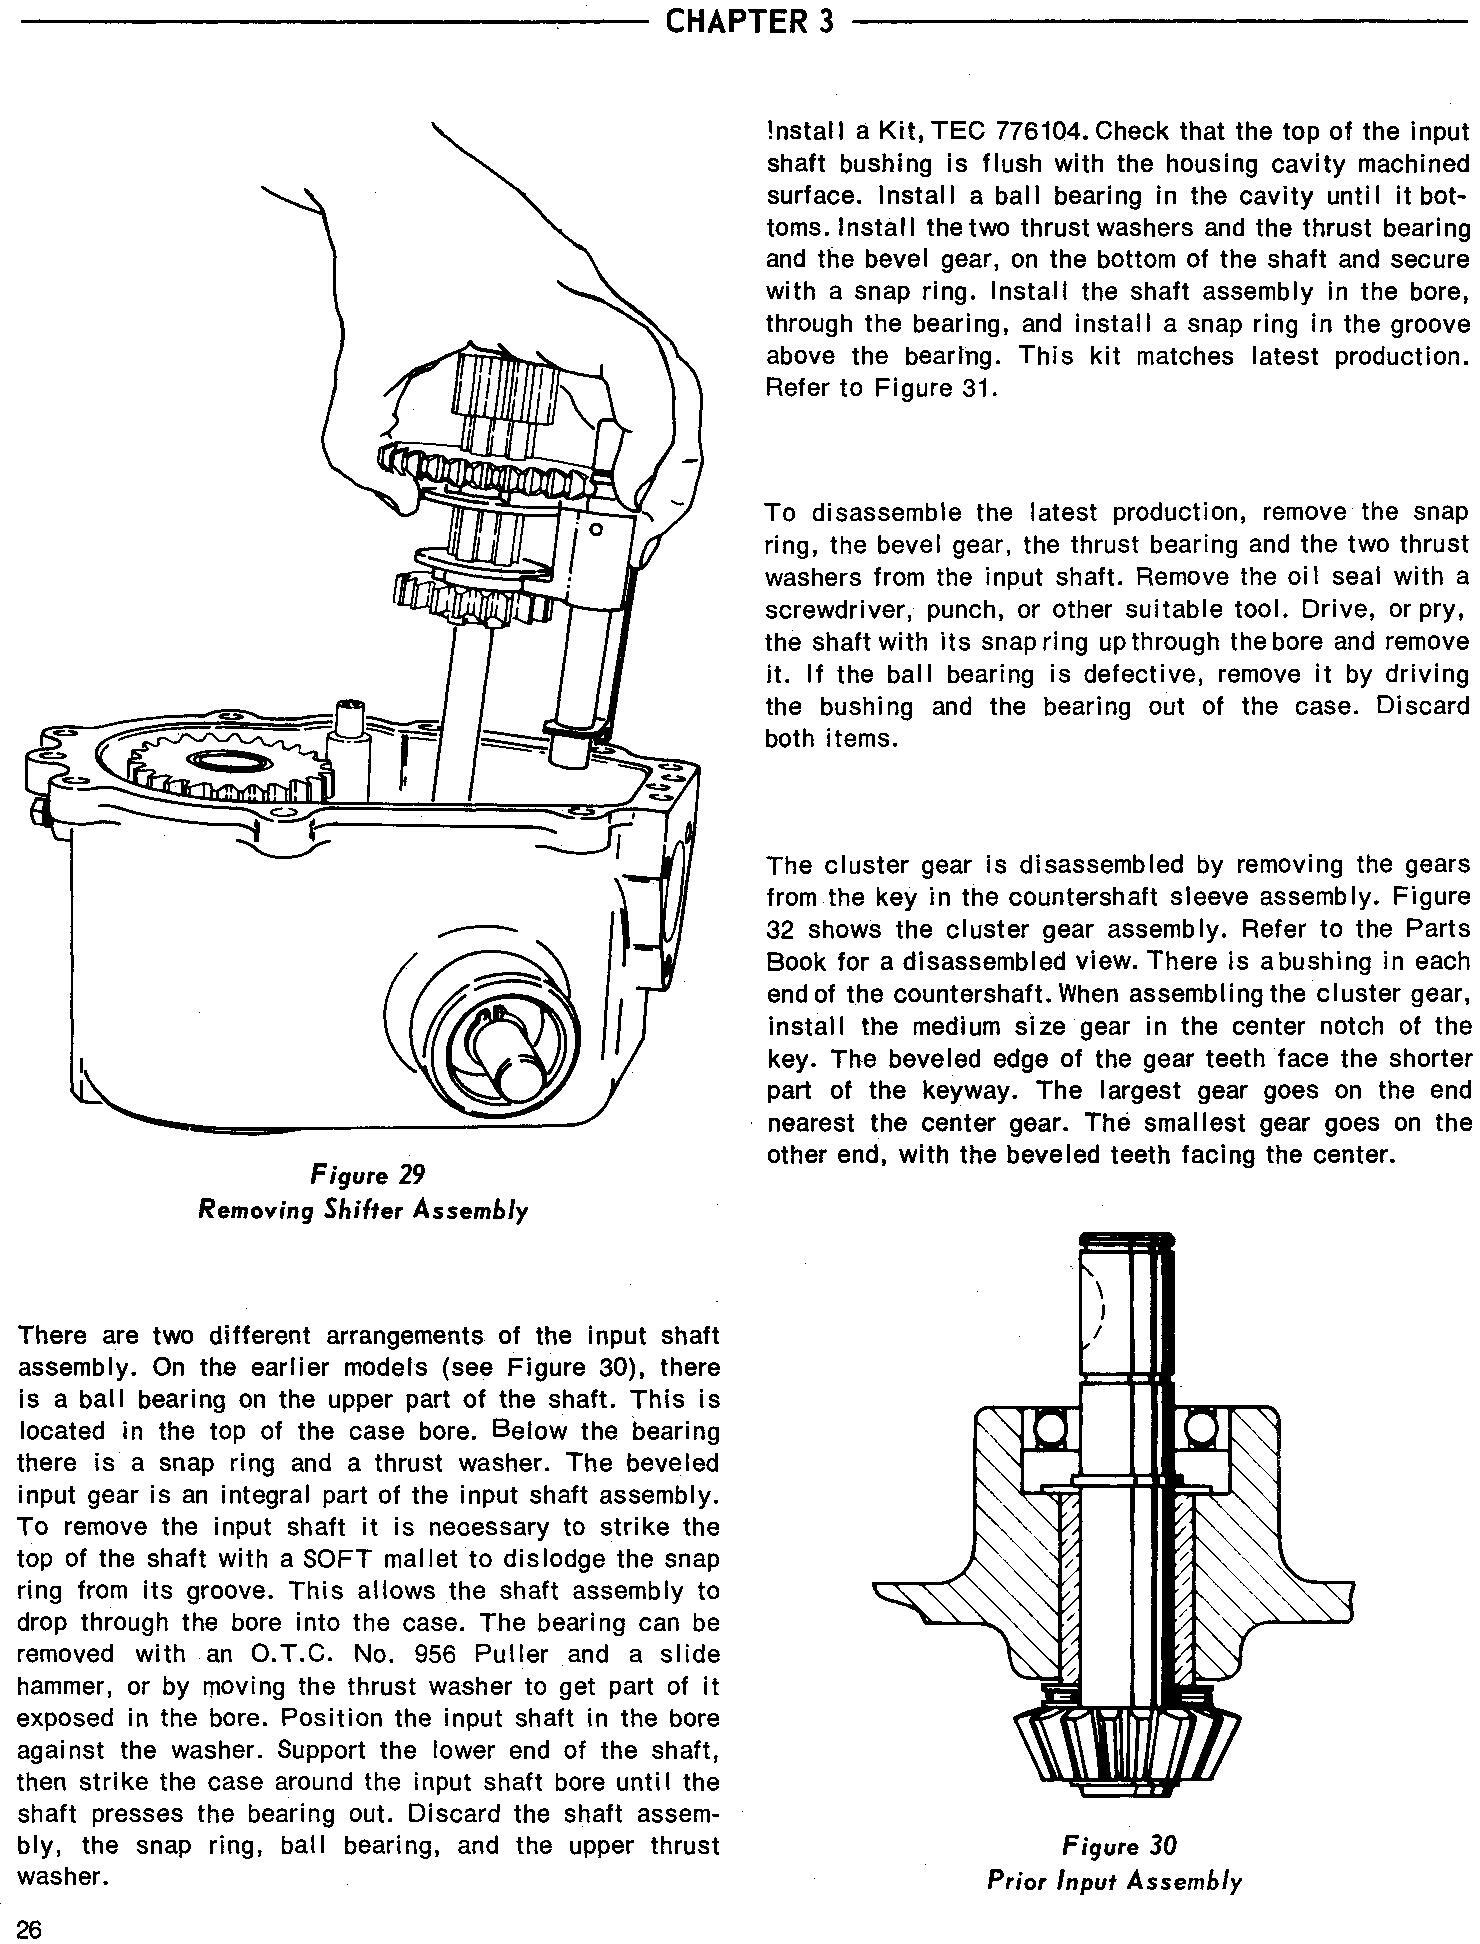 Ford Tractor 70 75 Lawn Tractor Service Manual (SE3240) - 2